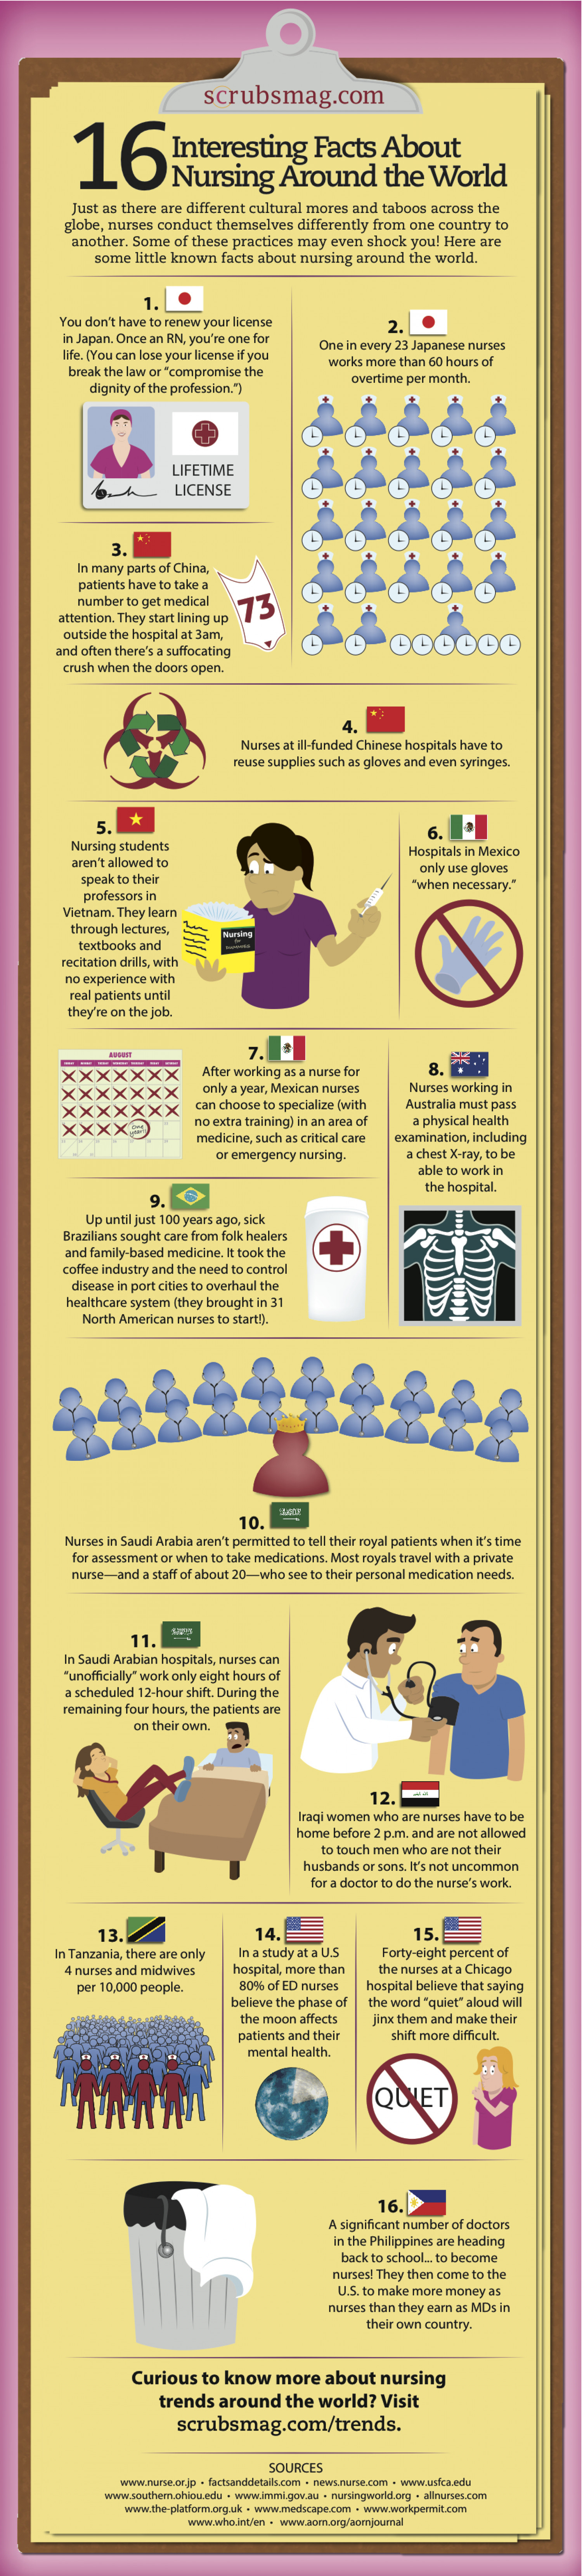 16 Interesting Facts About Nursing Around the World Infographic